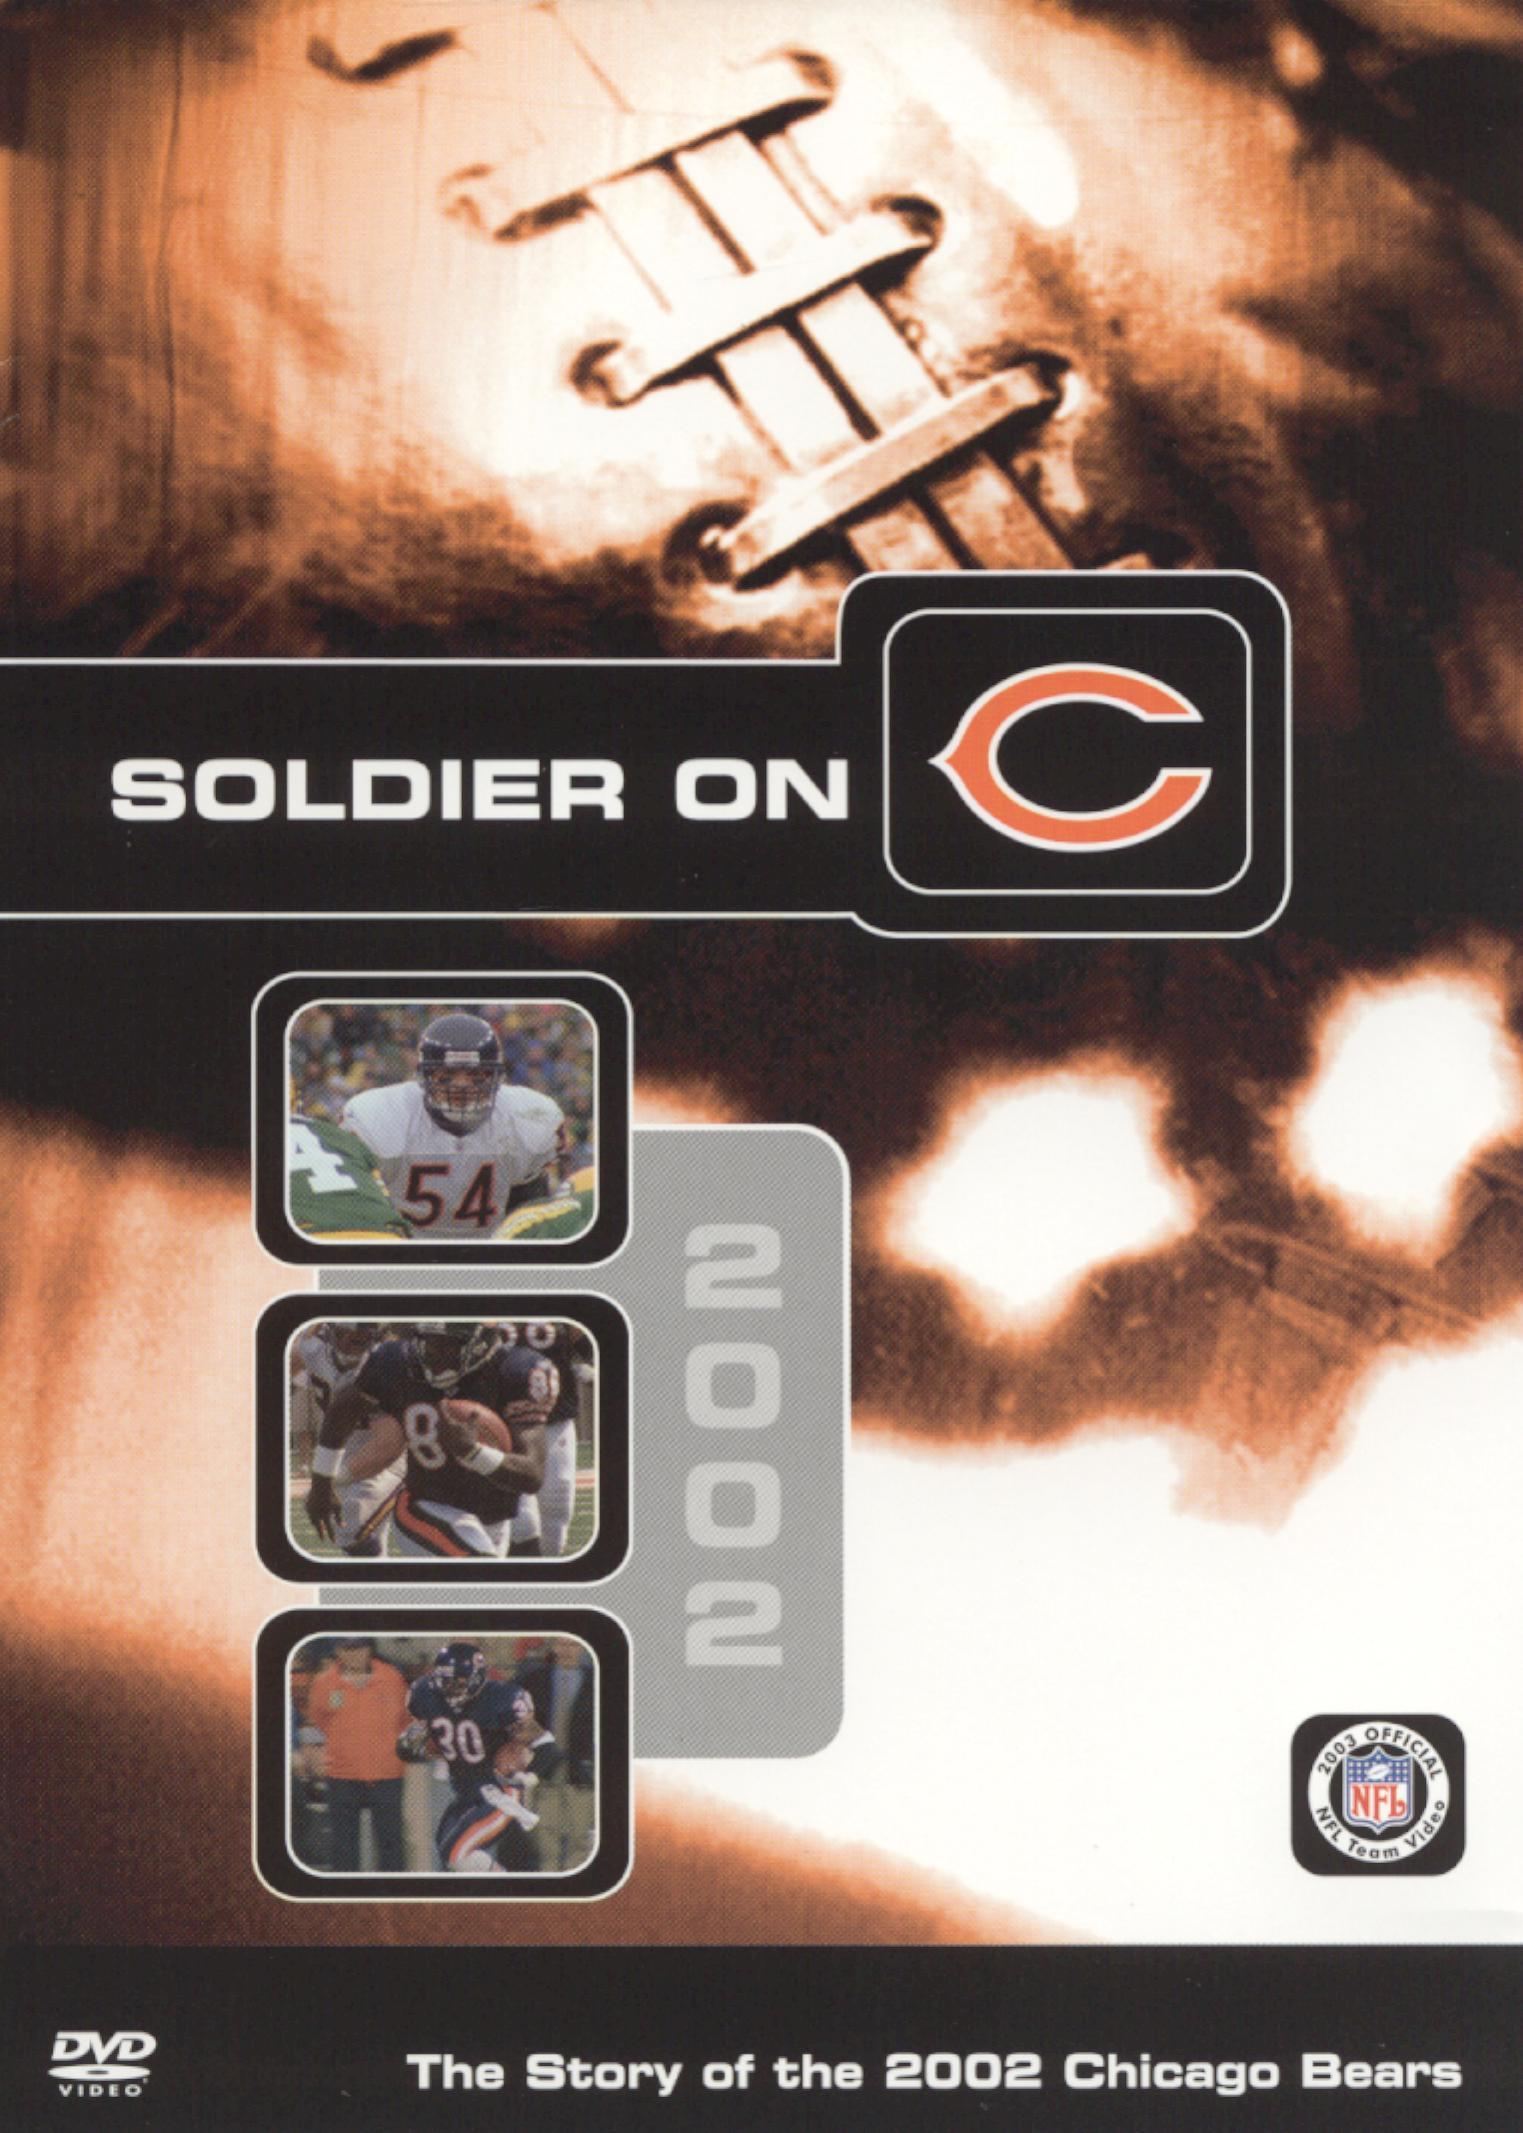 NFL: 2002 Chicago Bears Team Video - Soldier On